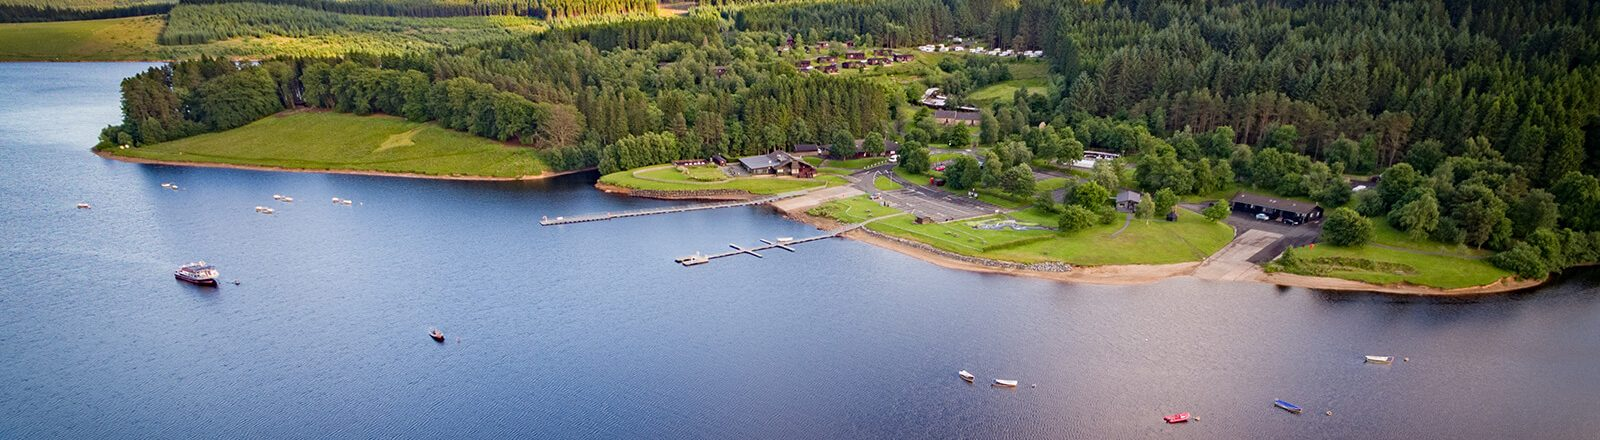 Aerial view of Kielder Waterside